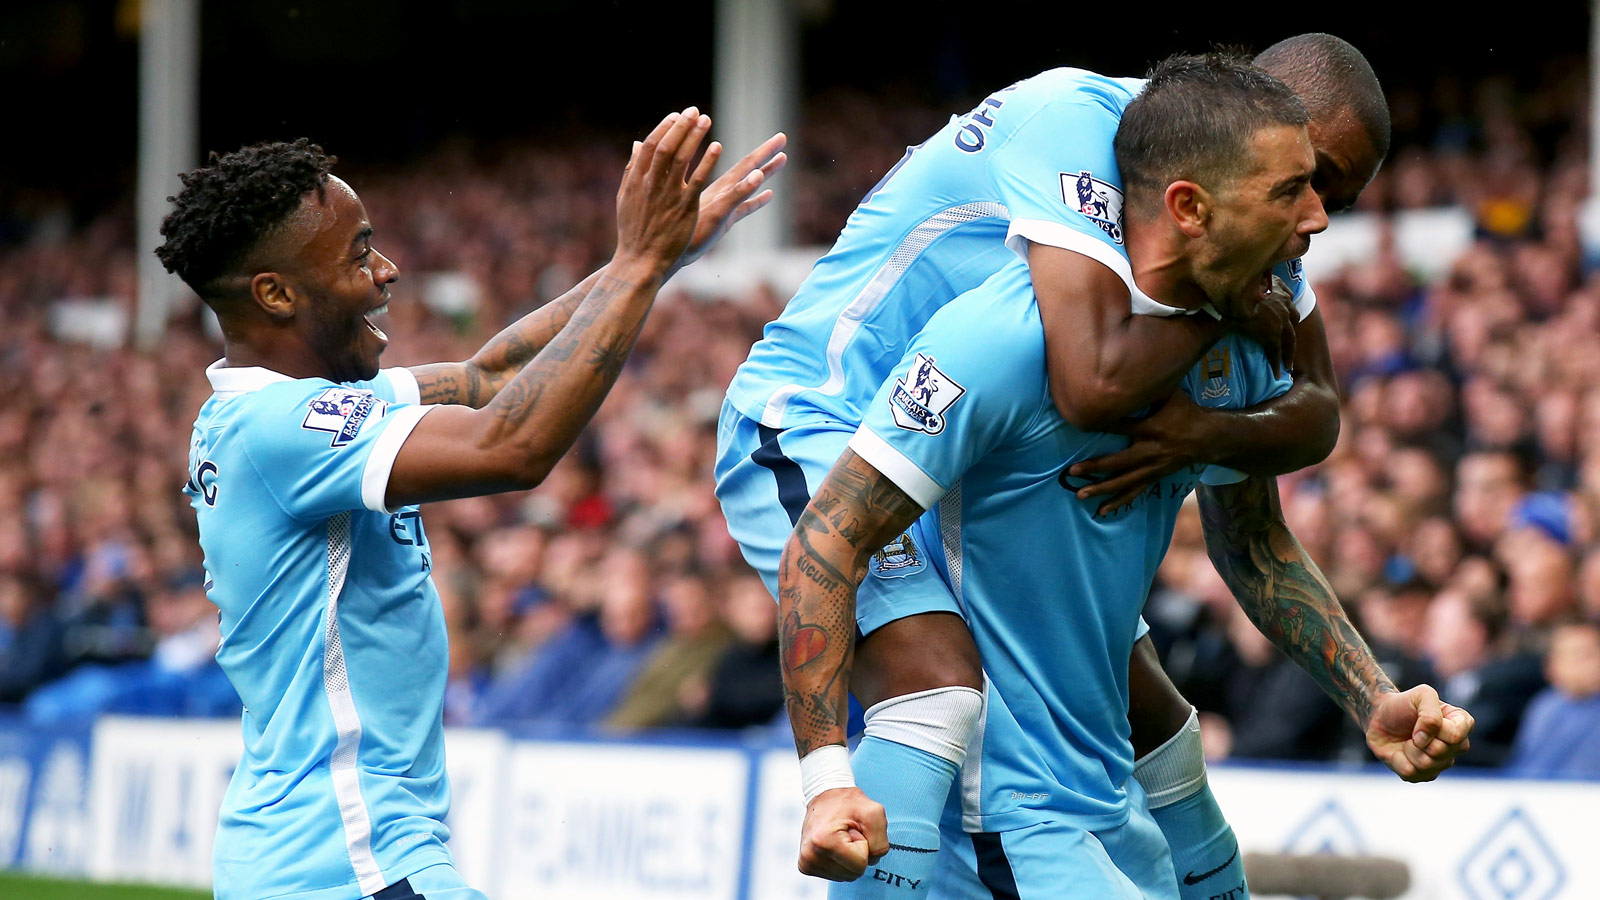 Manchester City stay perfect with decisive win over Everton